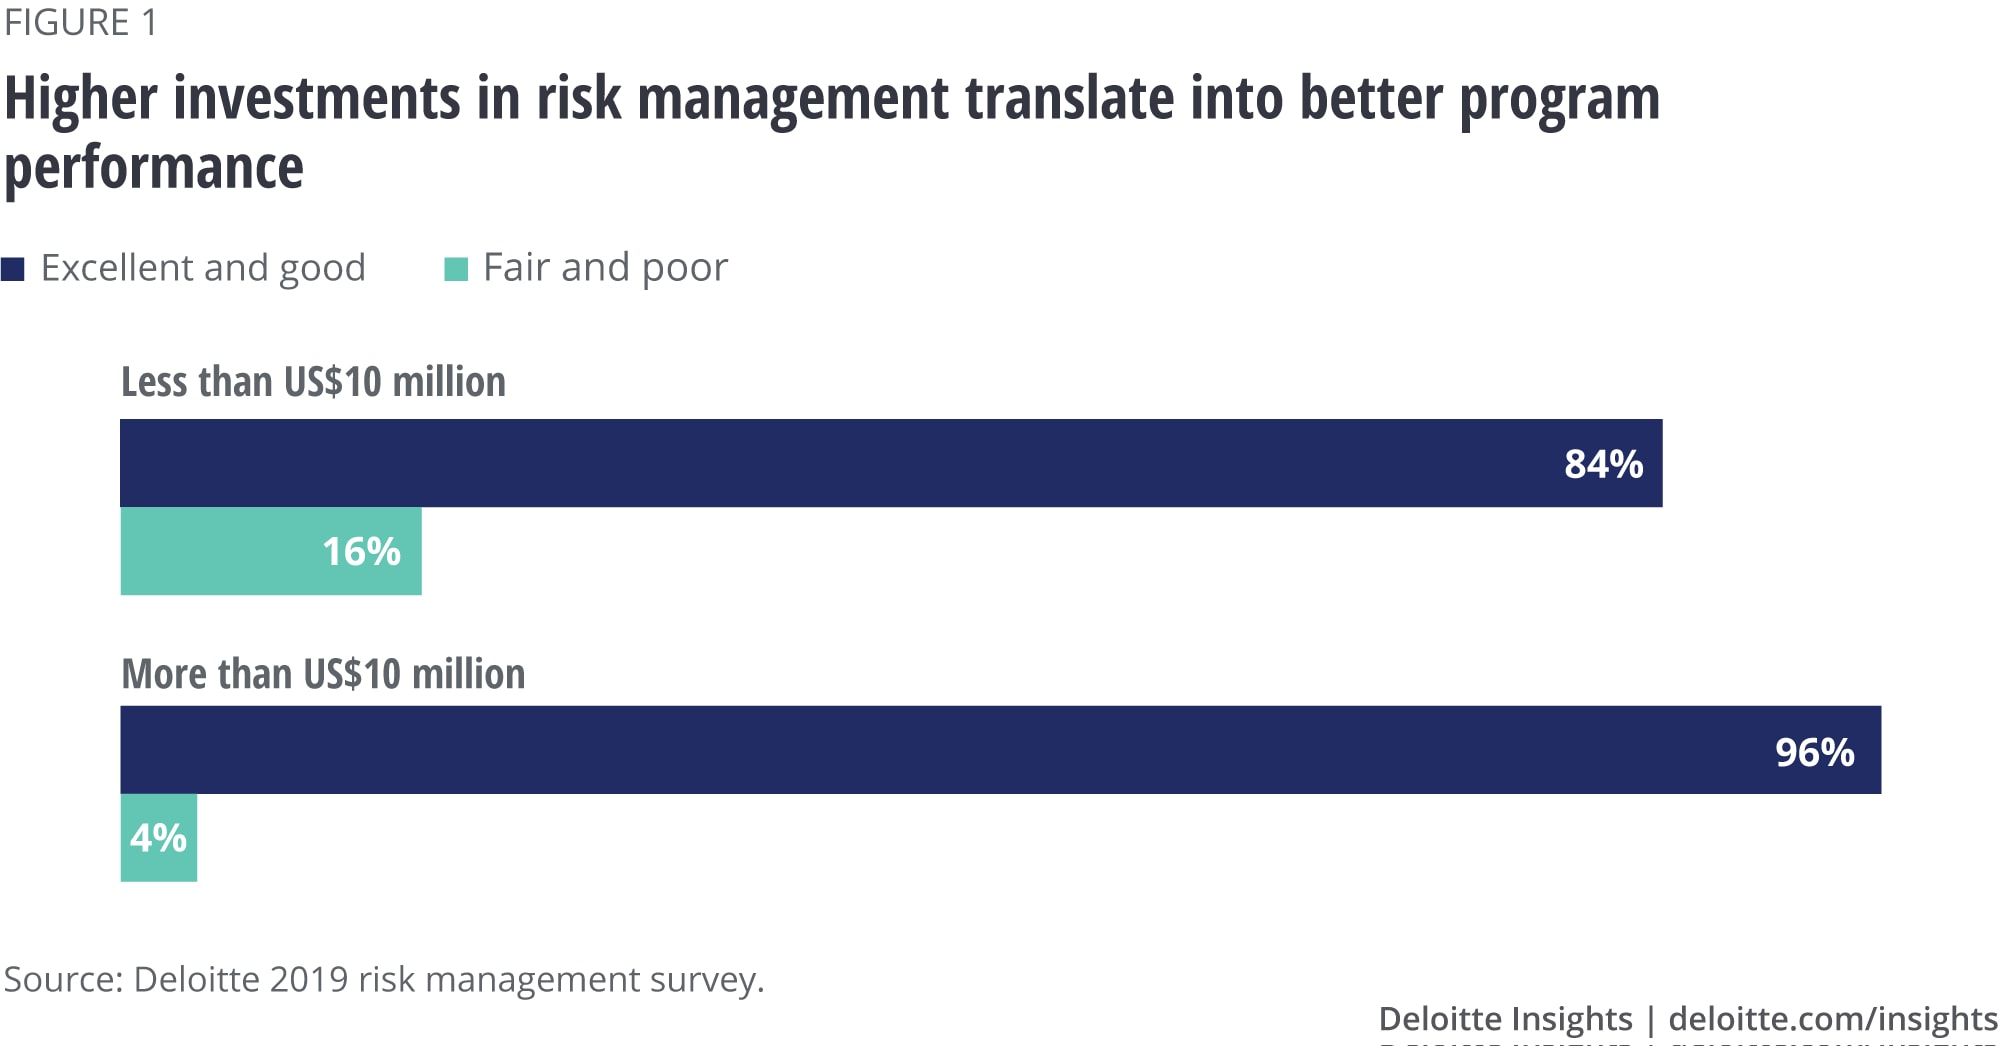 Higher investments in risk management translate into better program performance